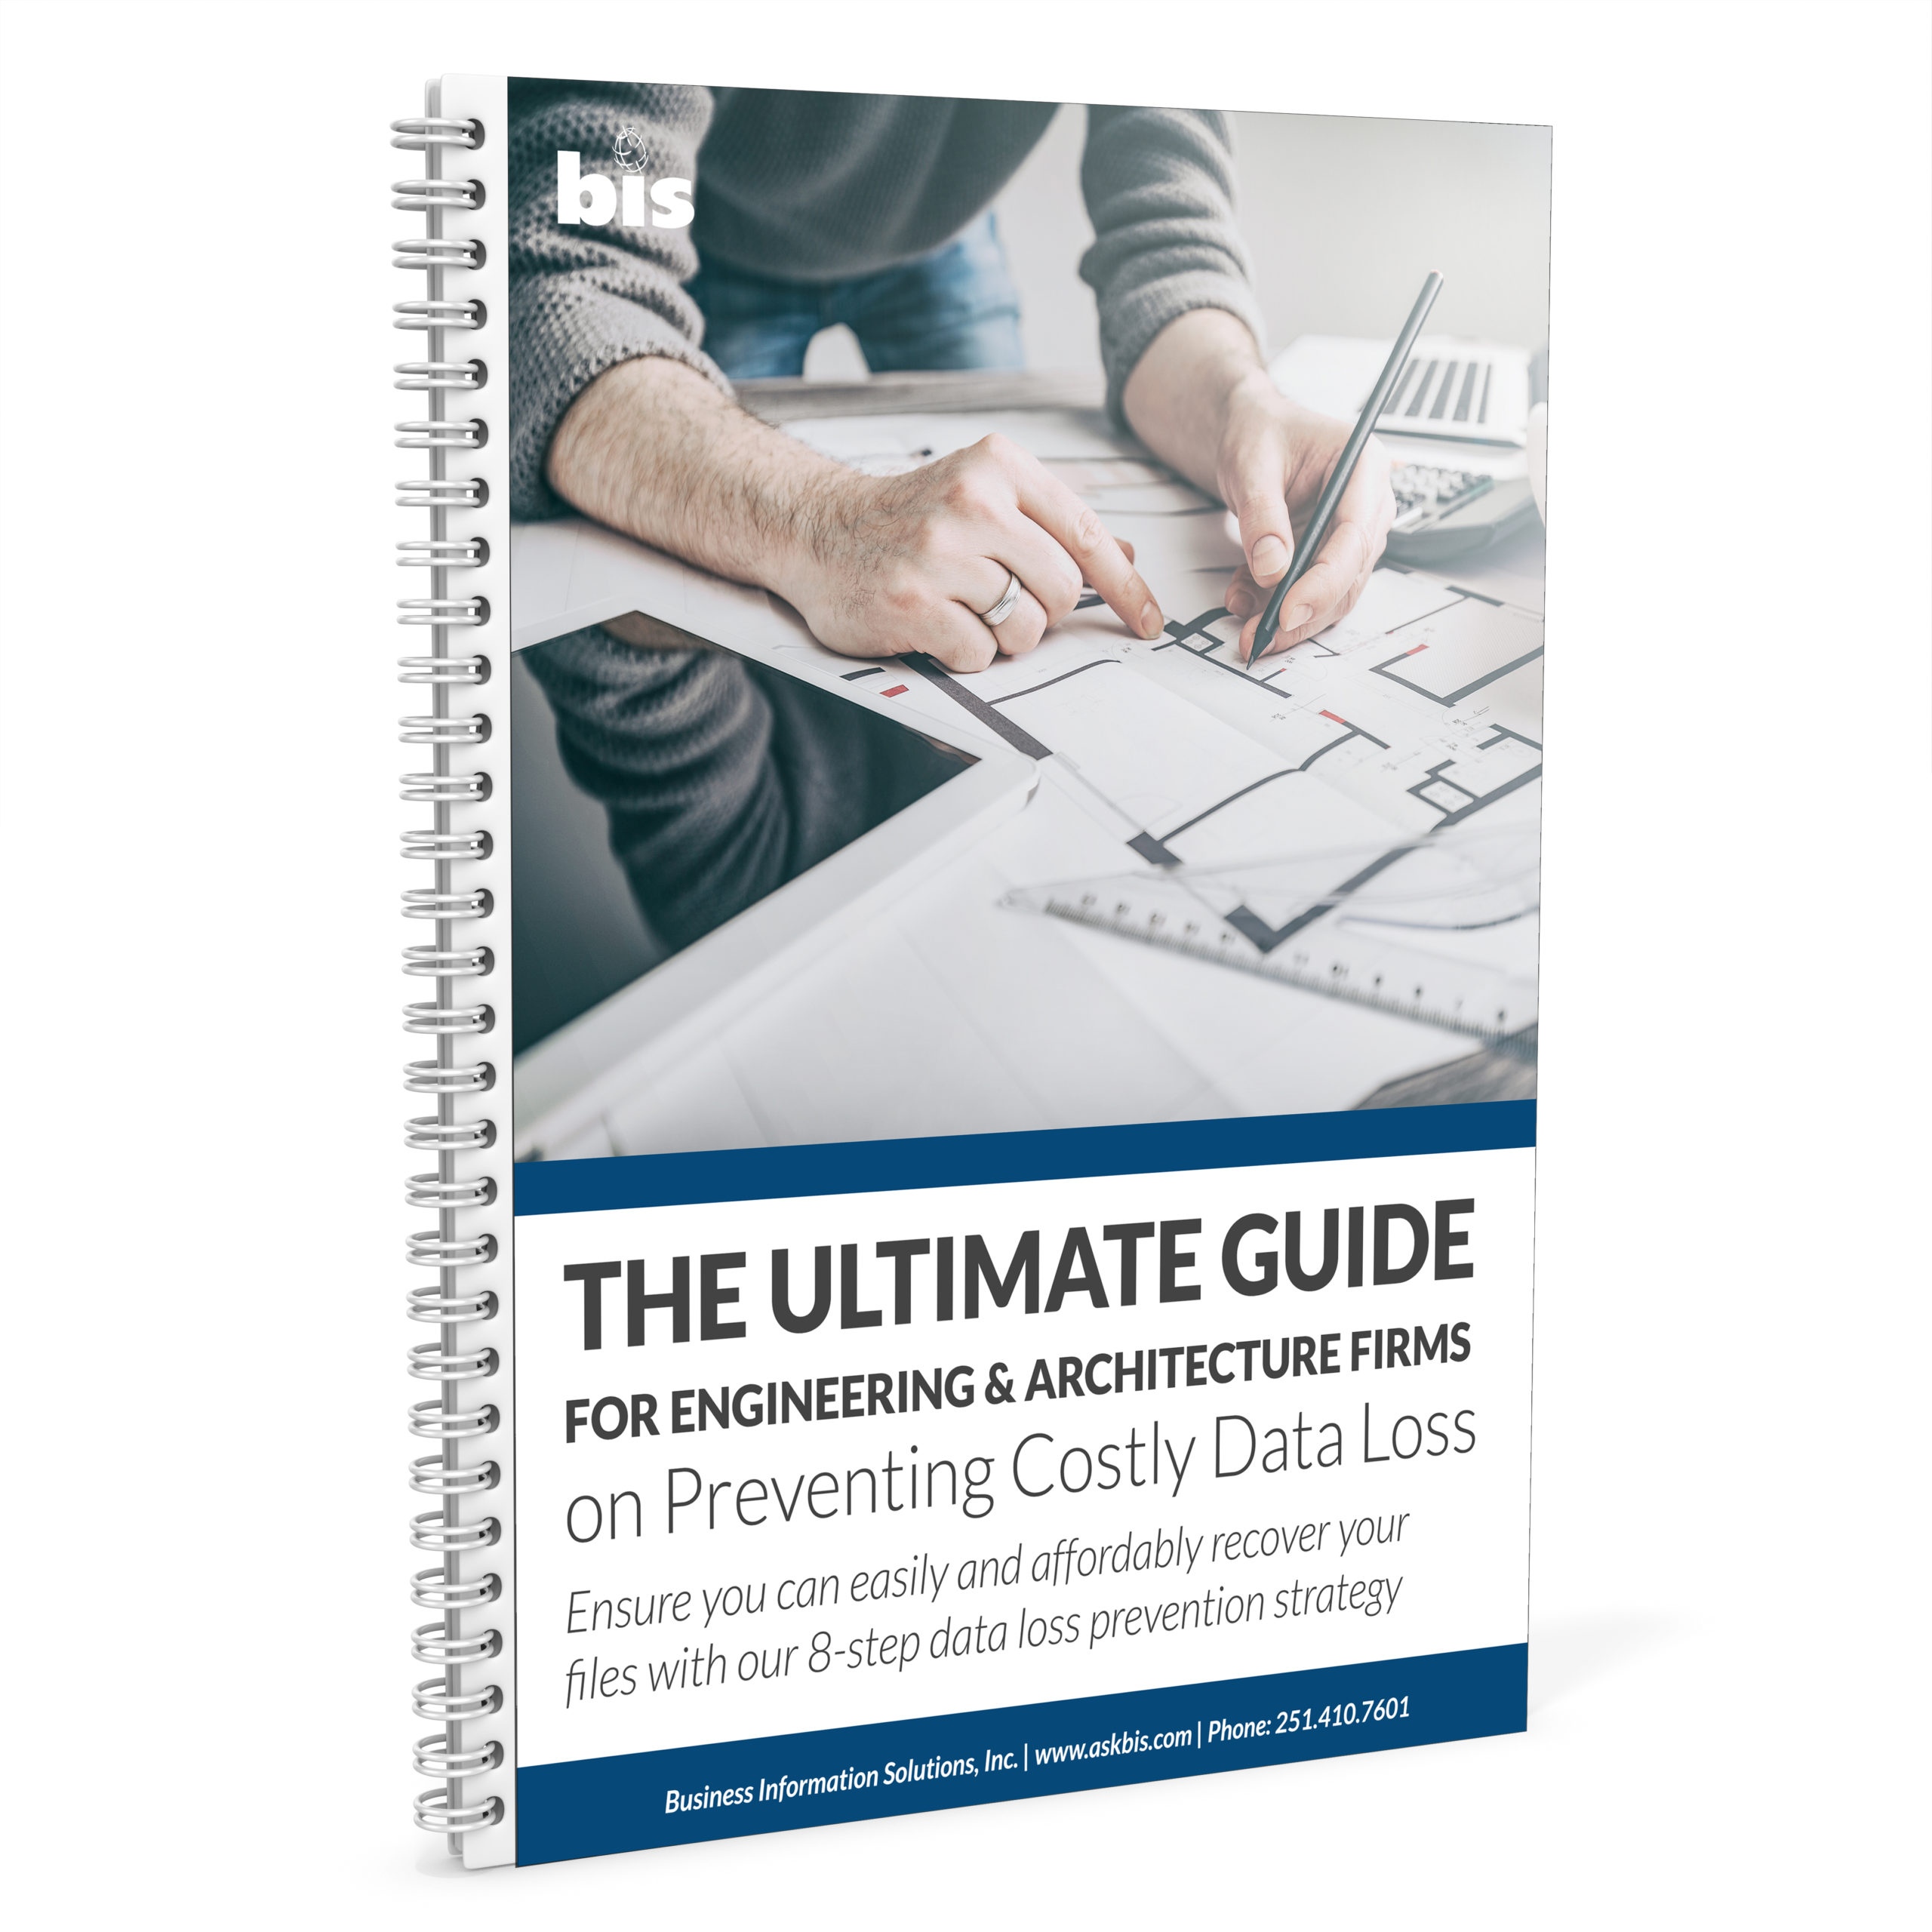 spiral bound notebook with a cover that says The Ultimate Guide for Engineering and Architecture Firms on Preventing Costly Data Loss